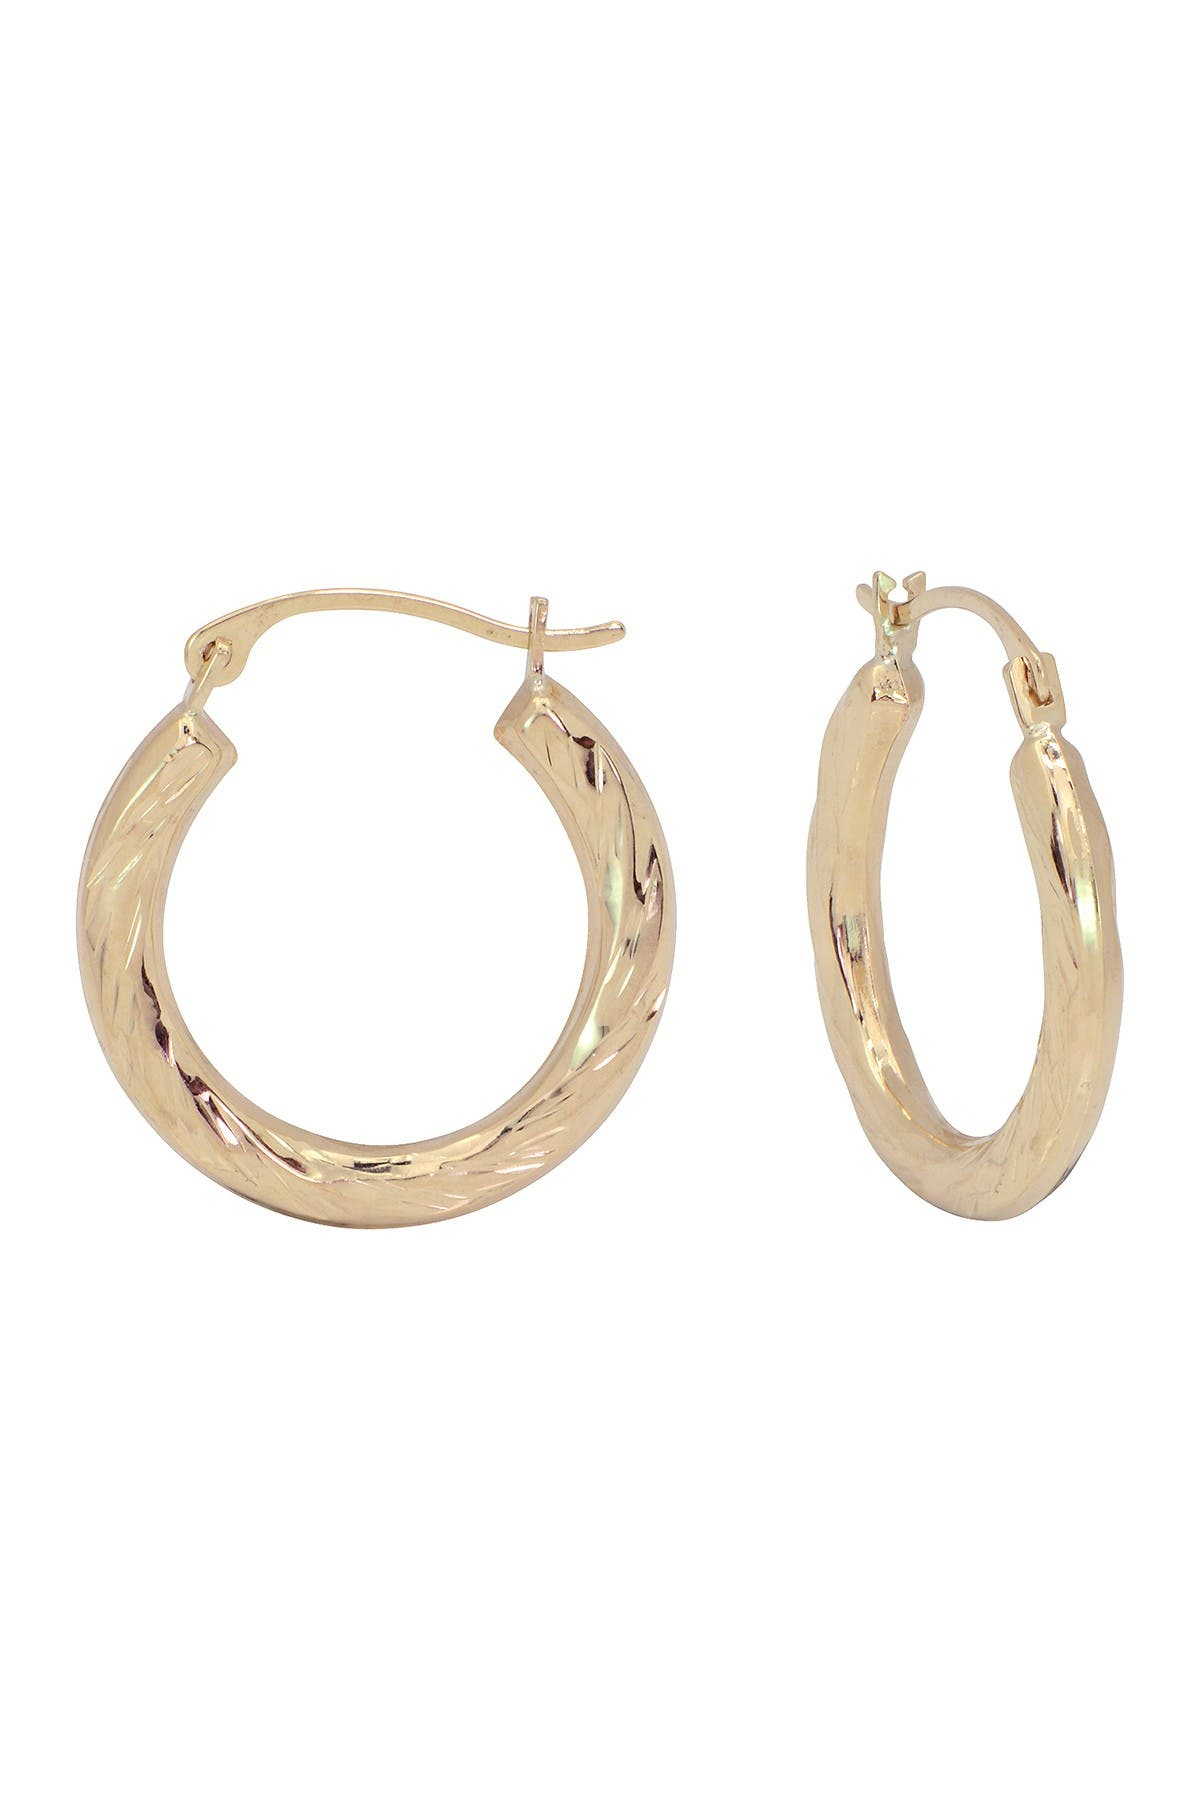 Candela 10k Gold Small Twisted 15mm Hoop Earrings